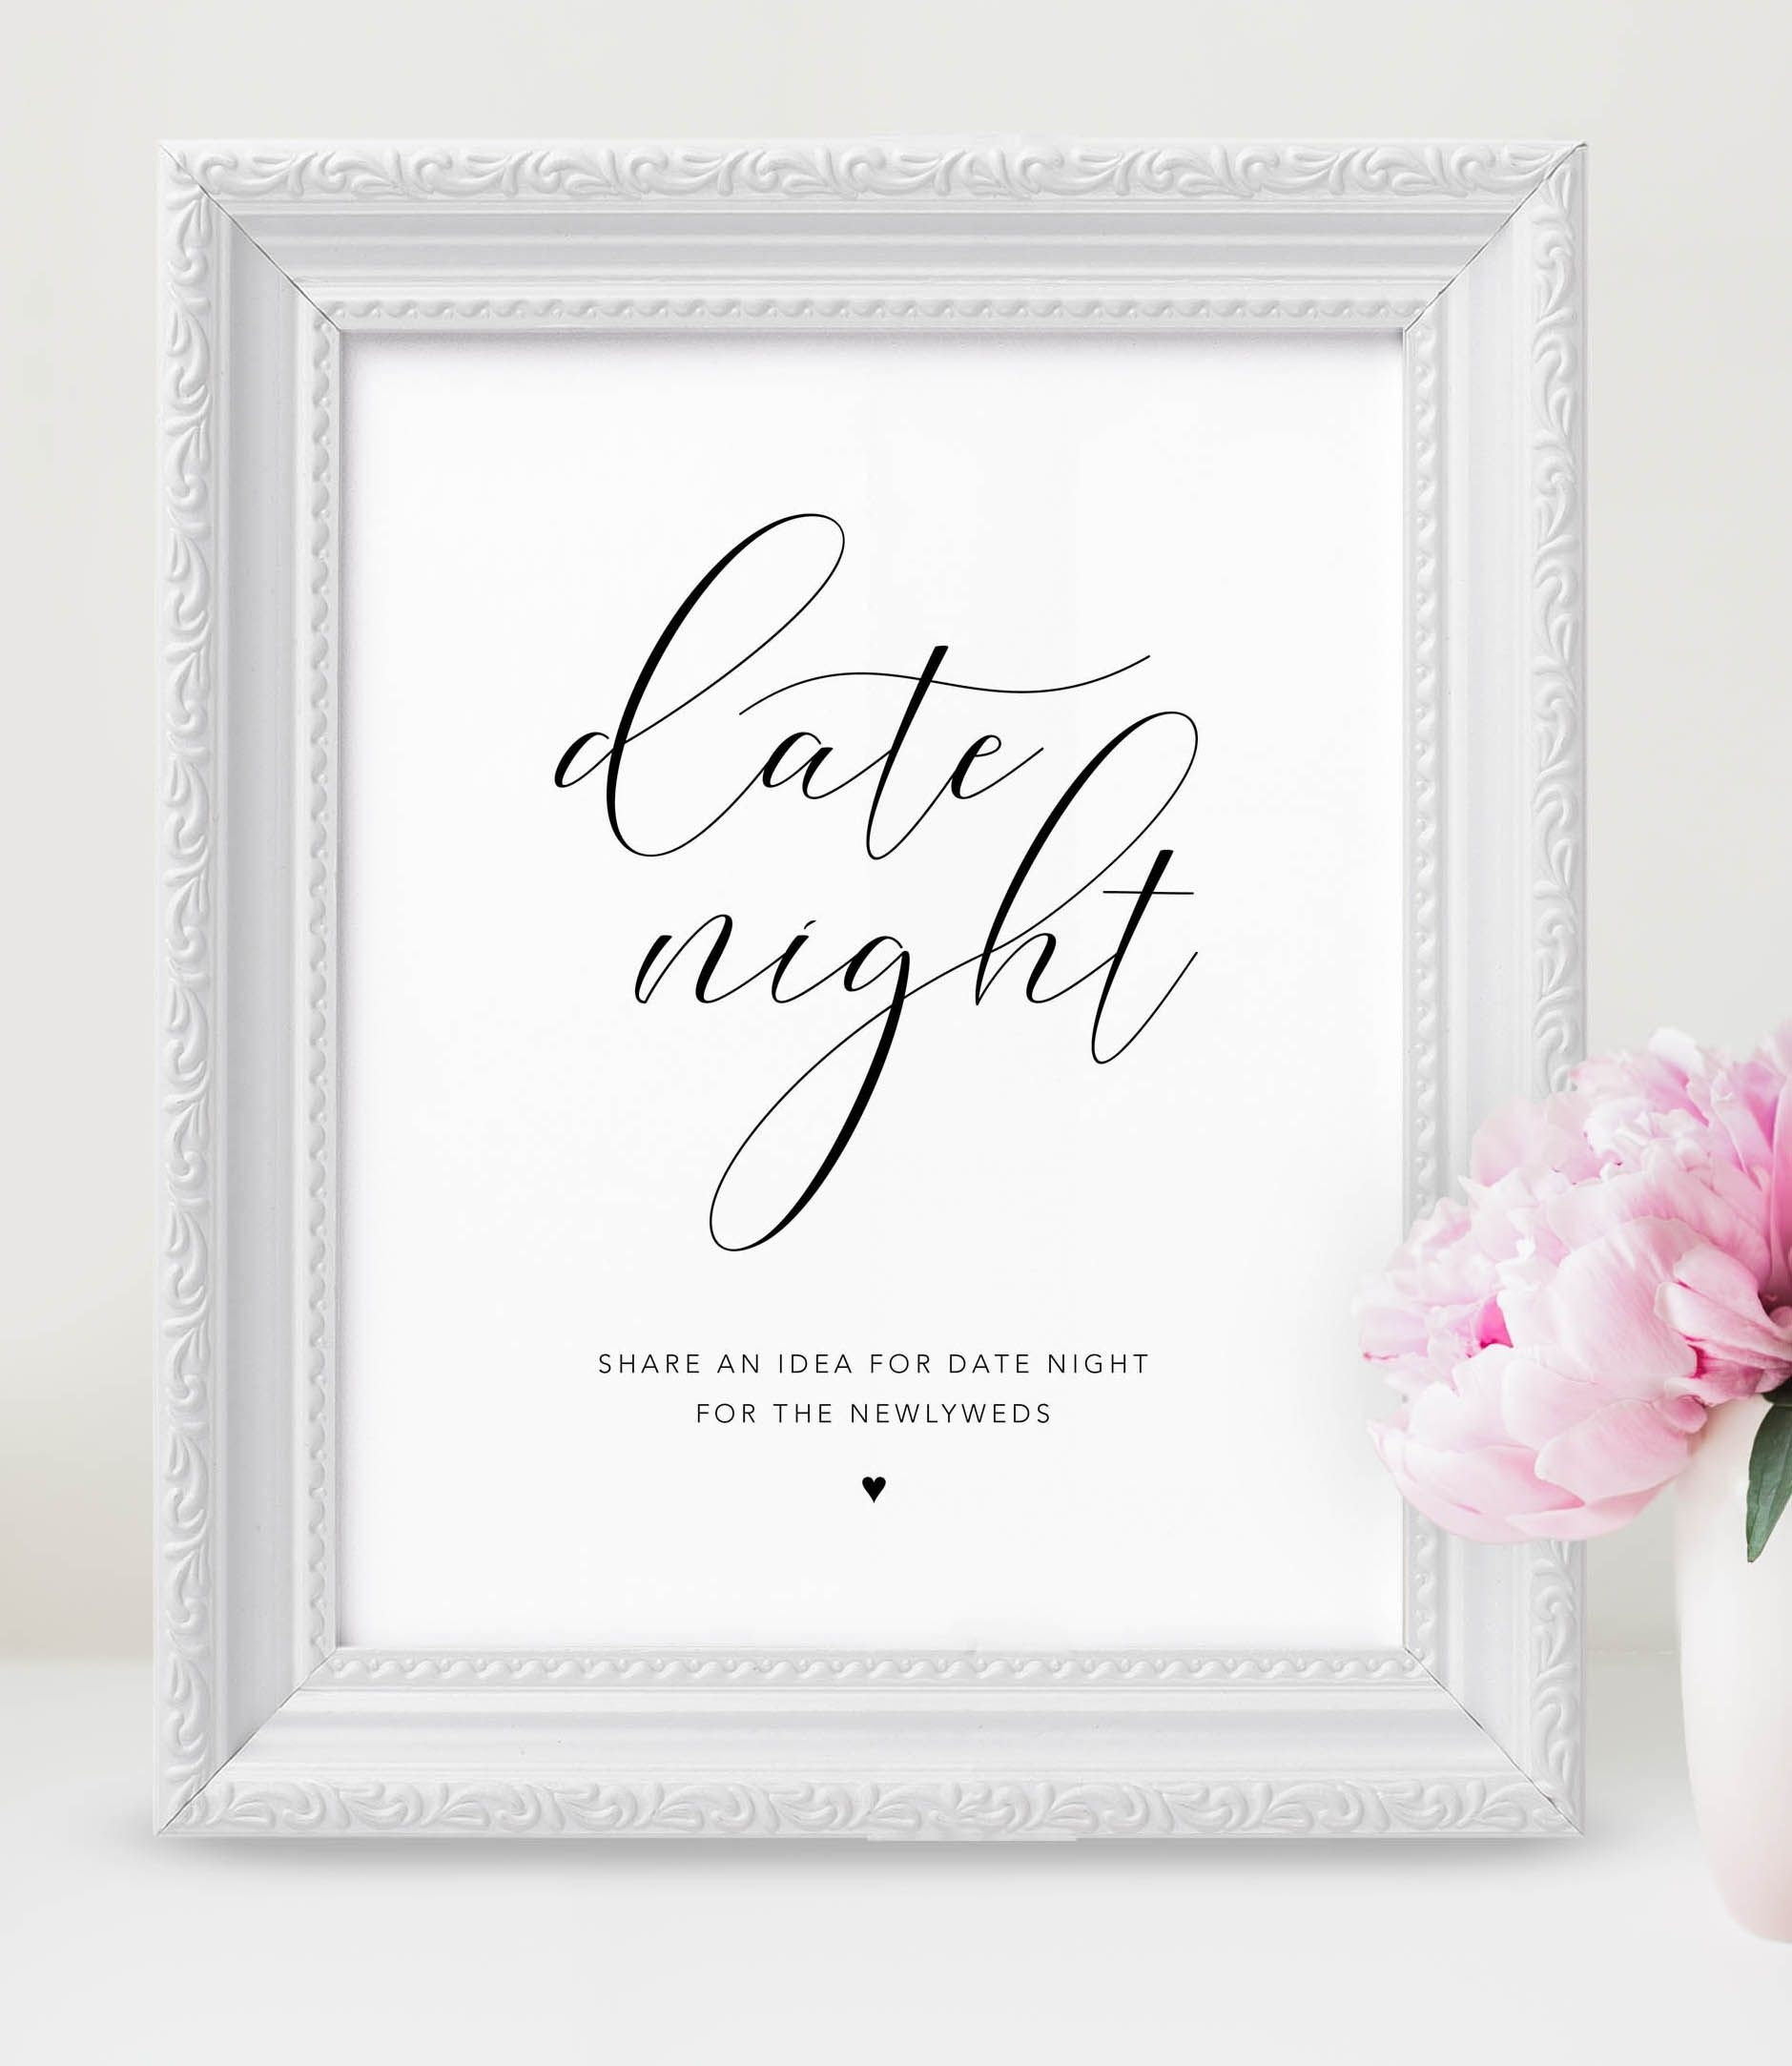 Use This Cute Date Night Jar Sign At Your Wedding! Wedding